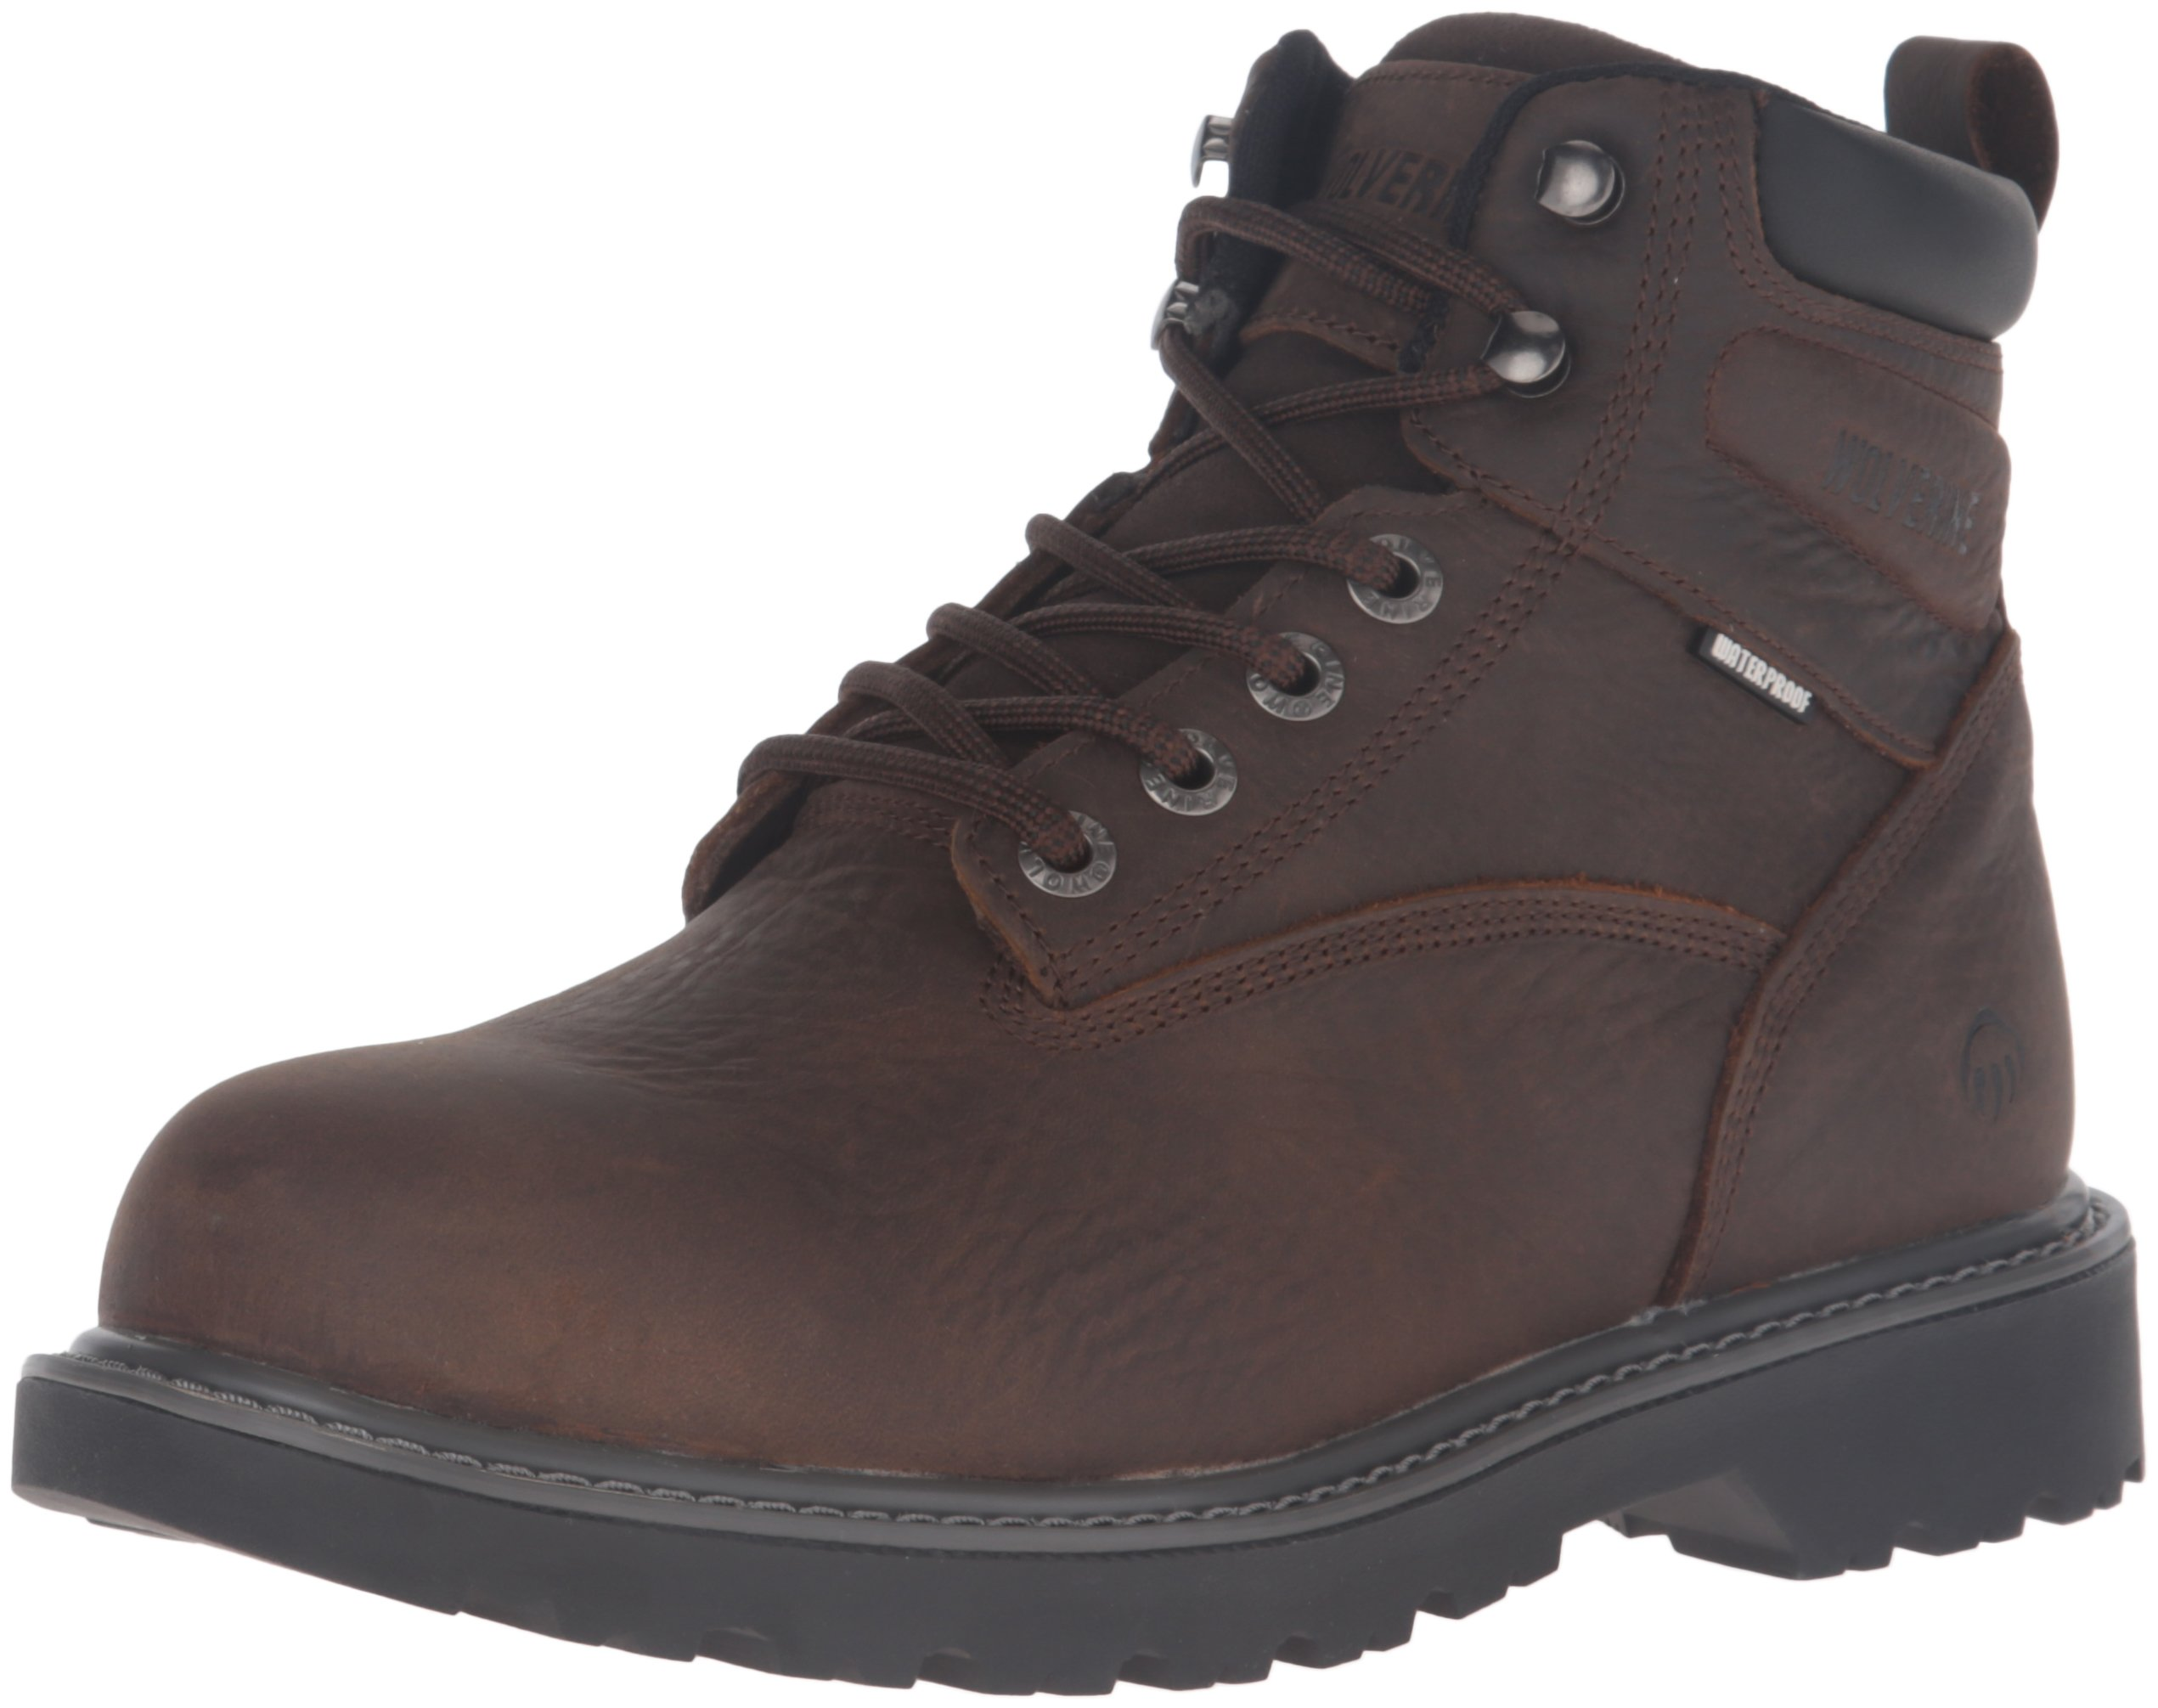 Wolverine Men's Floorhand 6 inch Waterproof Steel Toe Work Shoe, Dark Brown, 10.5 M US by Wolverine